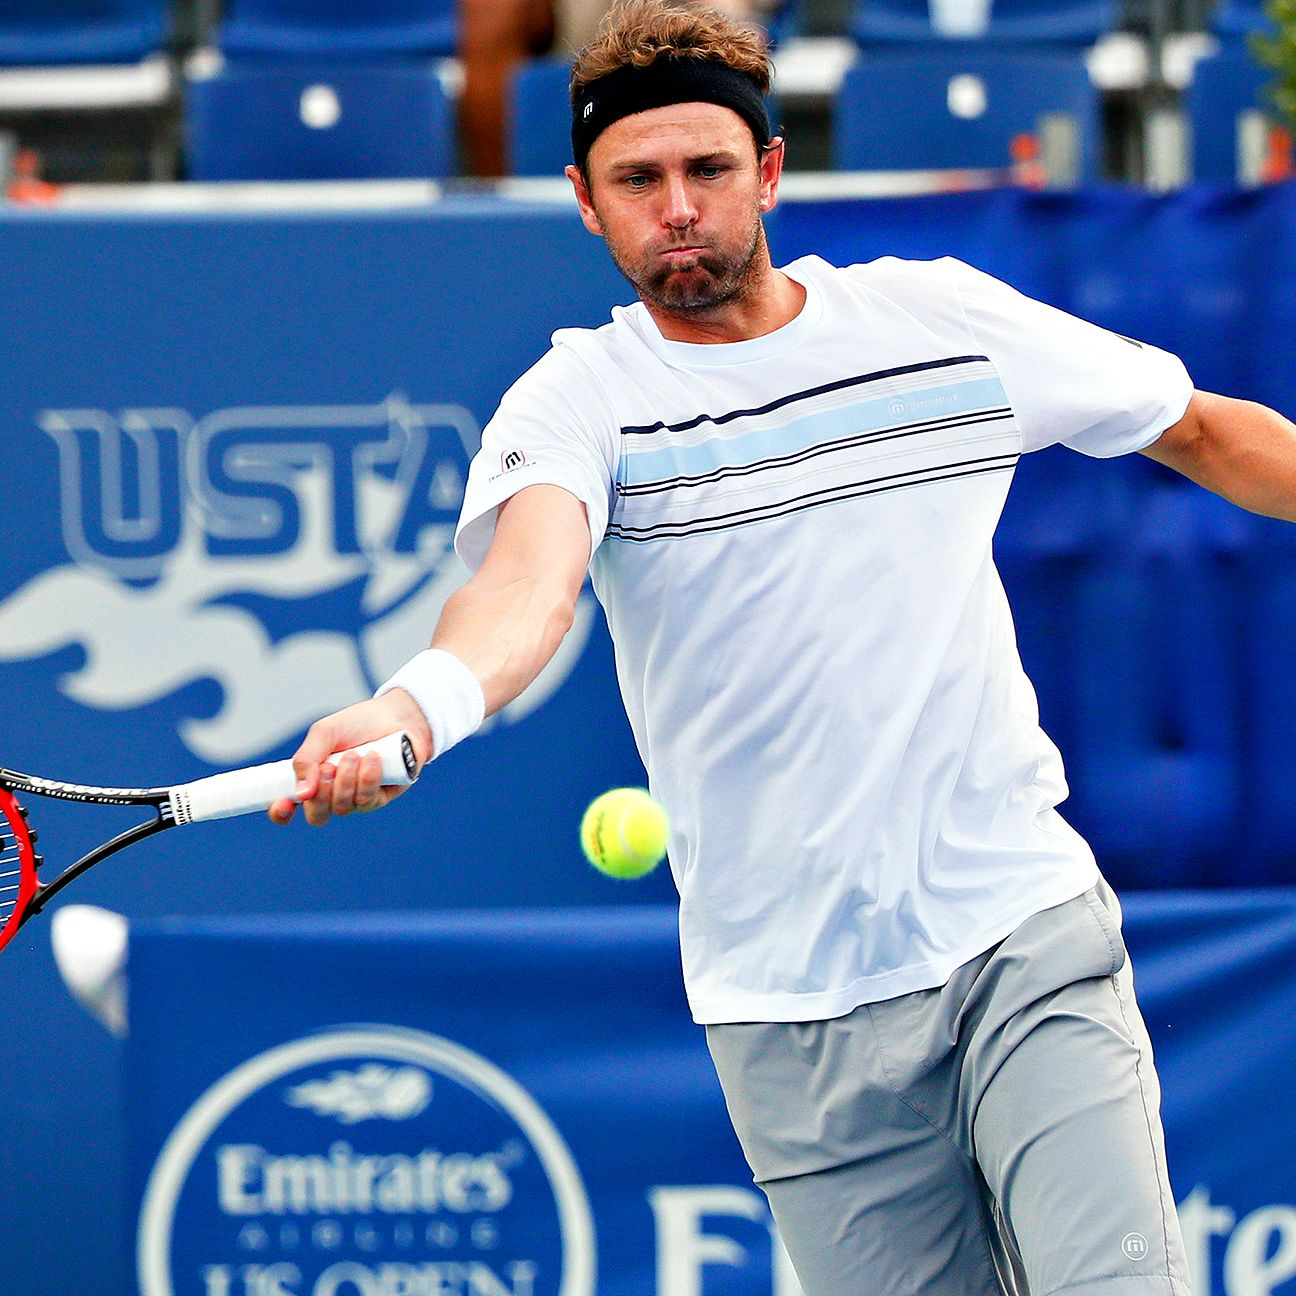 Mardy Fish Loses In Atlanta Open First Round To Dudi Sela